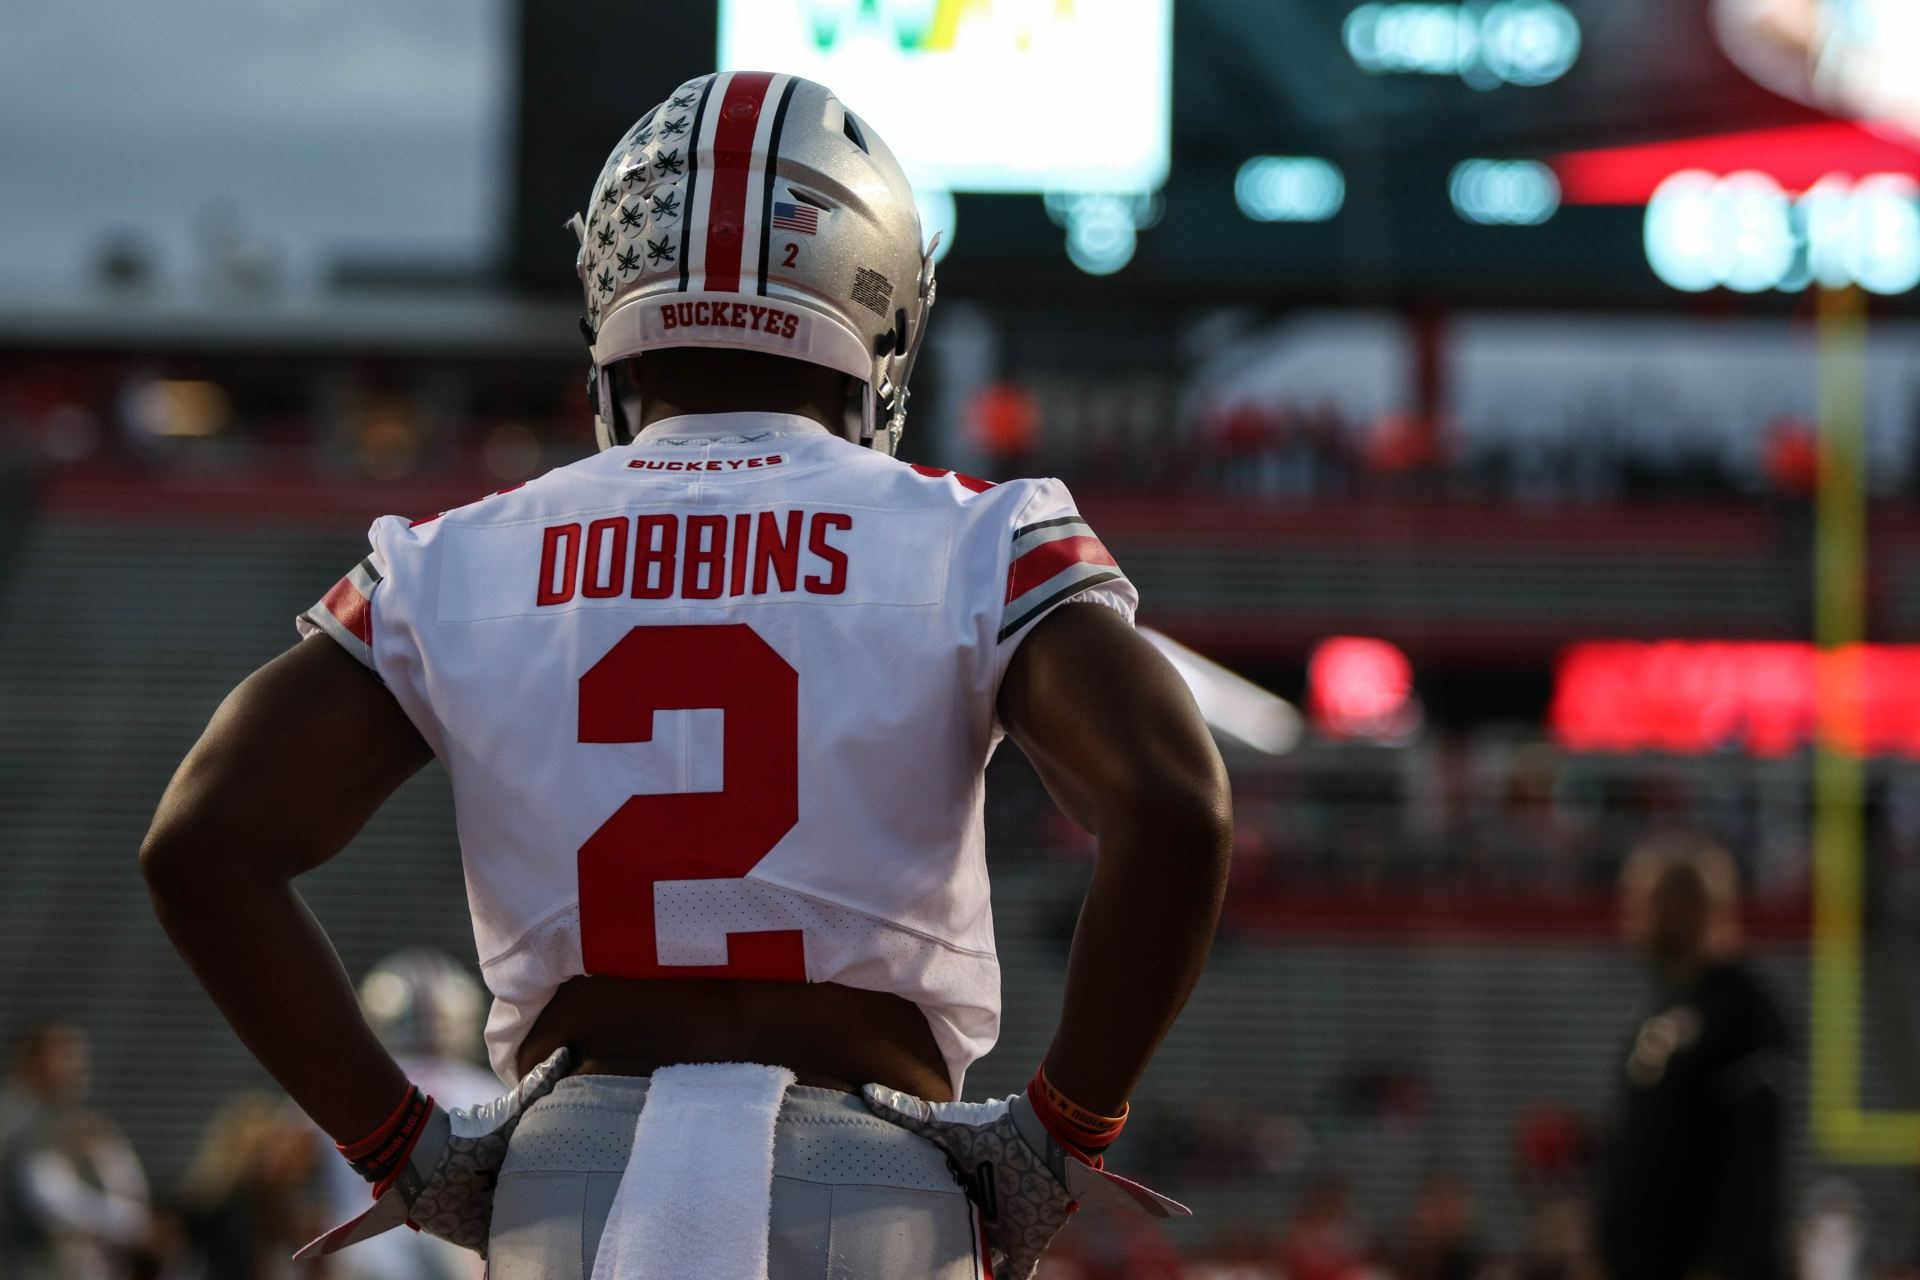 best website 7c557 4321f Joke's over, Ohio State needs to give J.K. Dobbins the ball